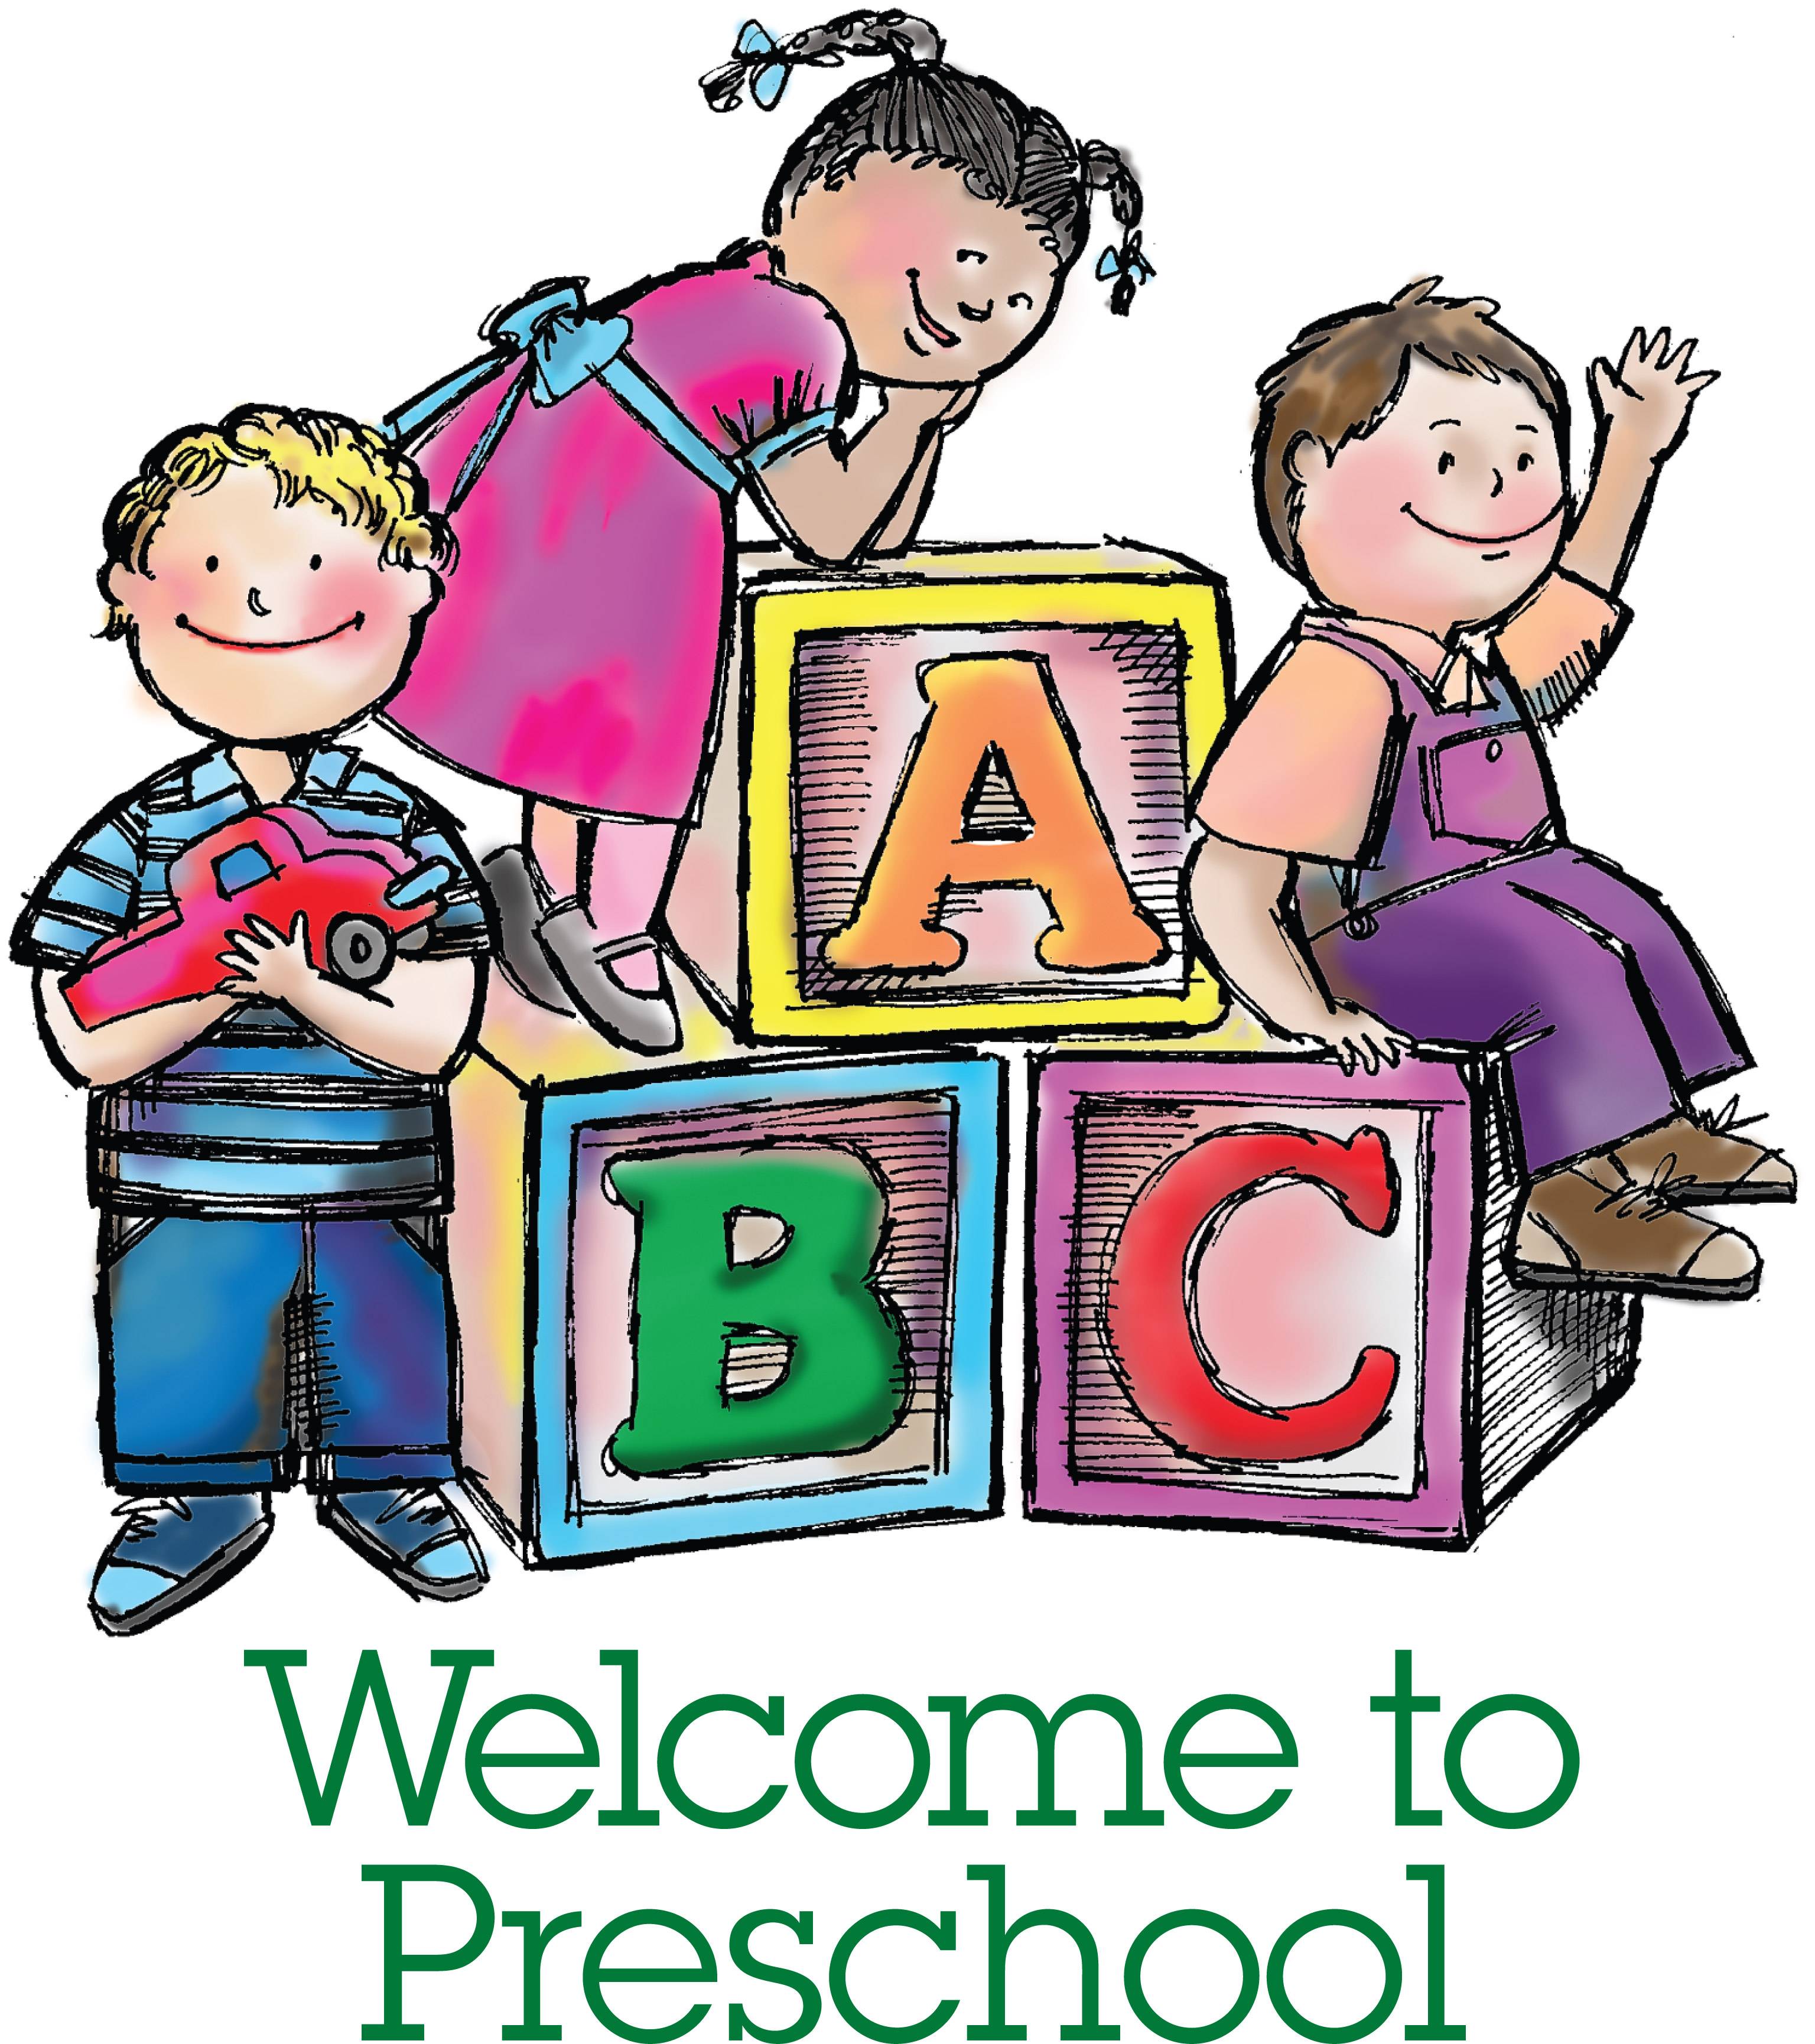 Day care circle time clipart 2